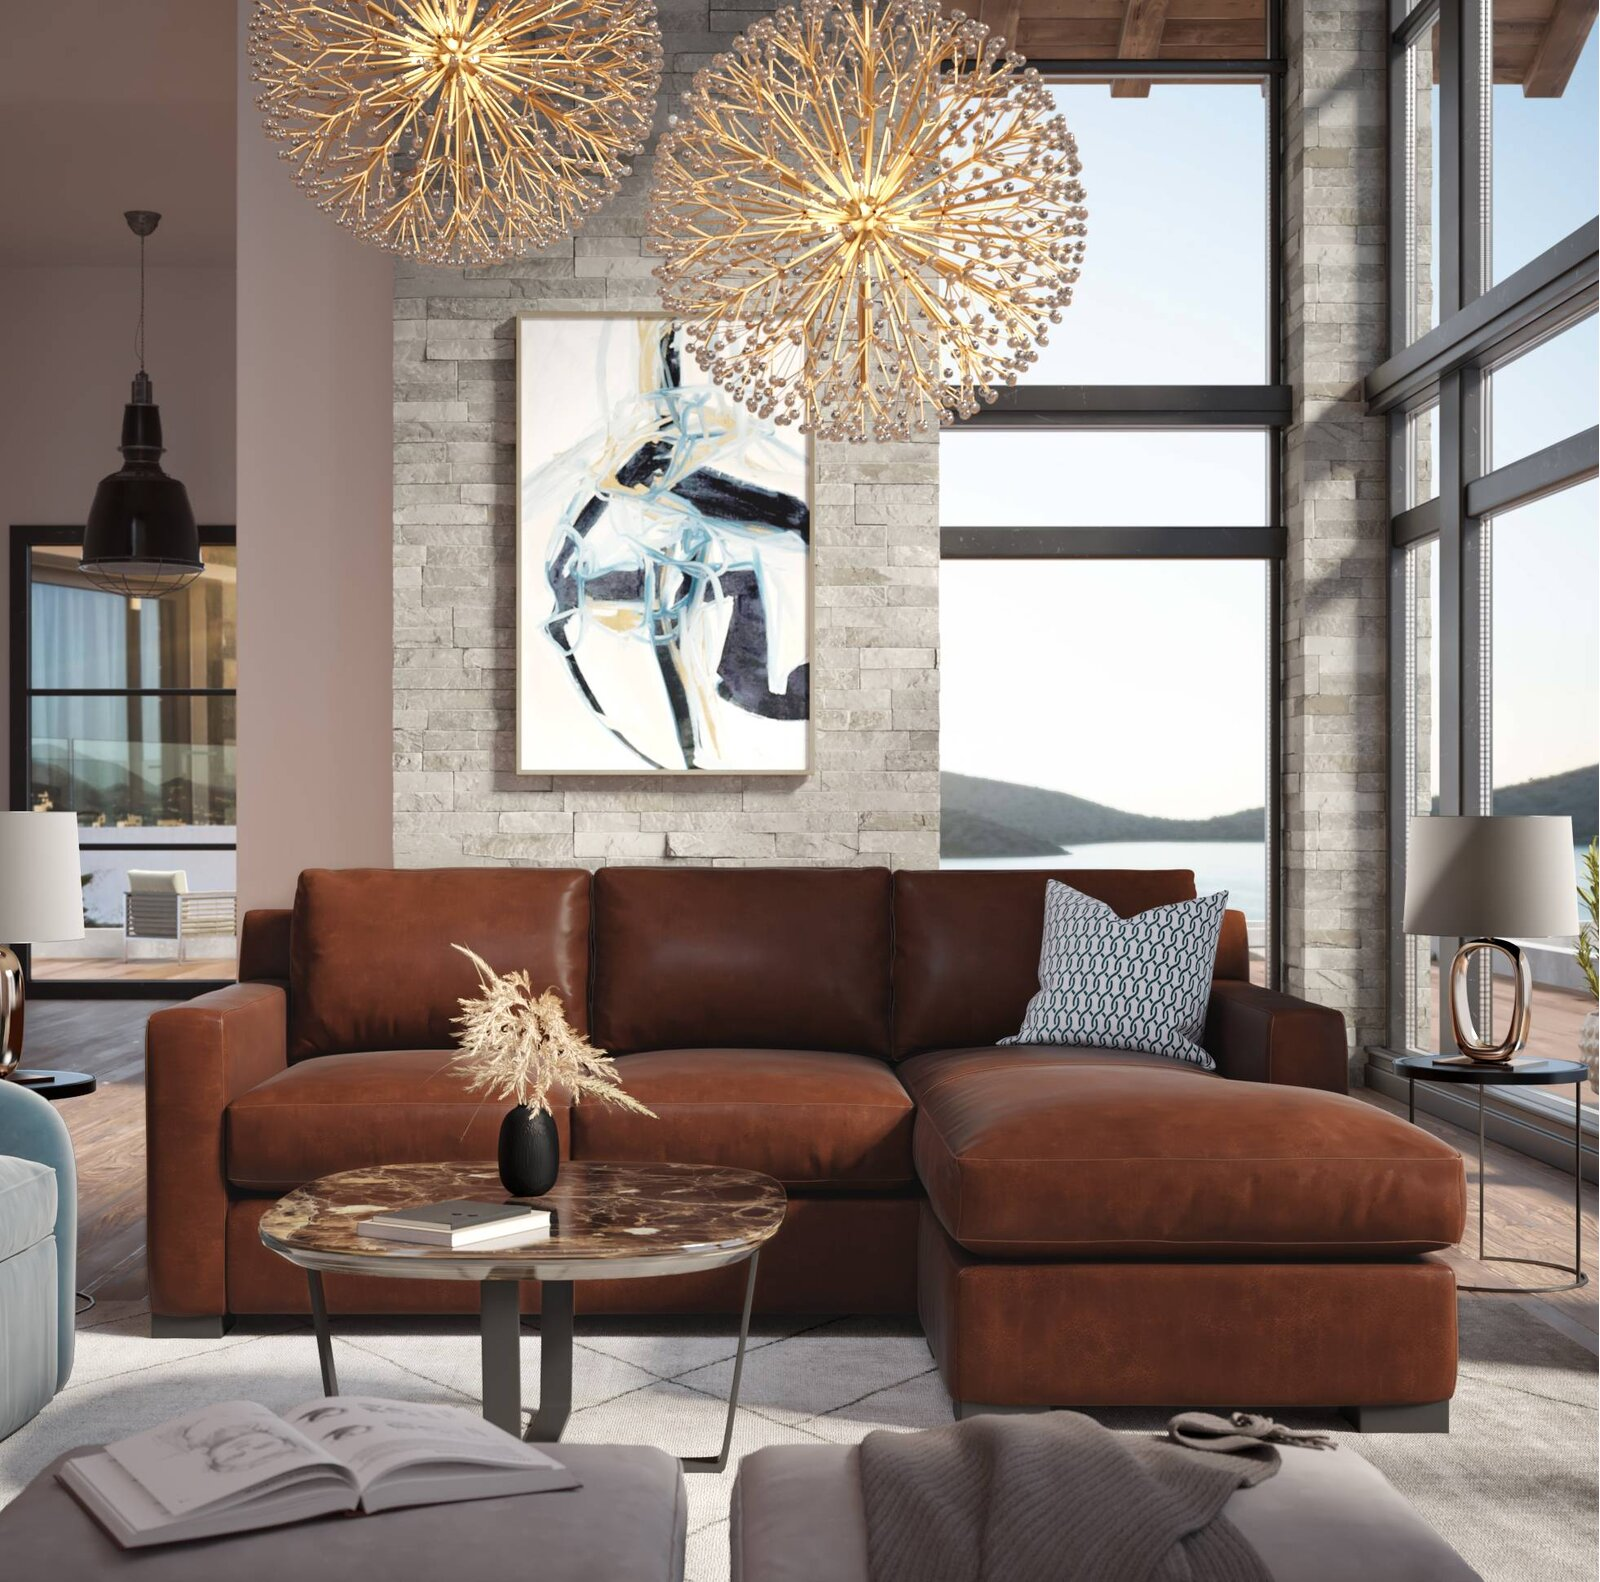 89-inch-small-sofa-with-chaise-genuine-leather-upholstery-in-reddish-brown-overstuffed-comfortable-couch-for-apartment-or-loft